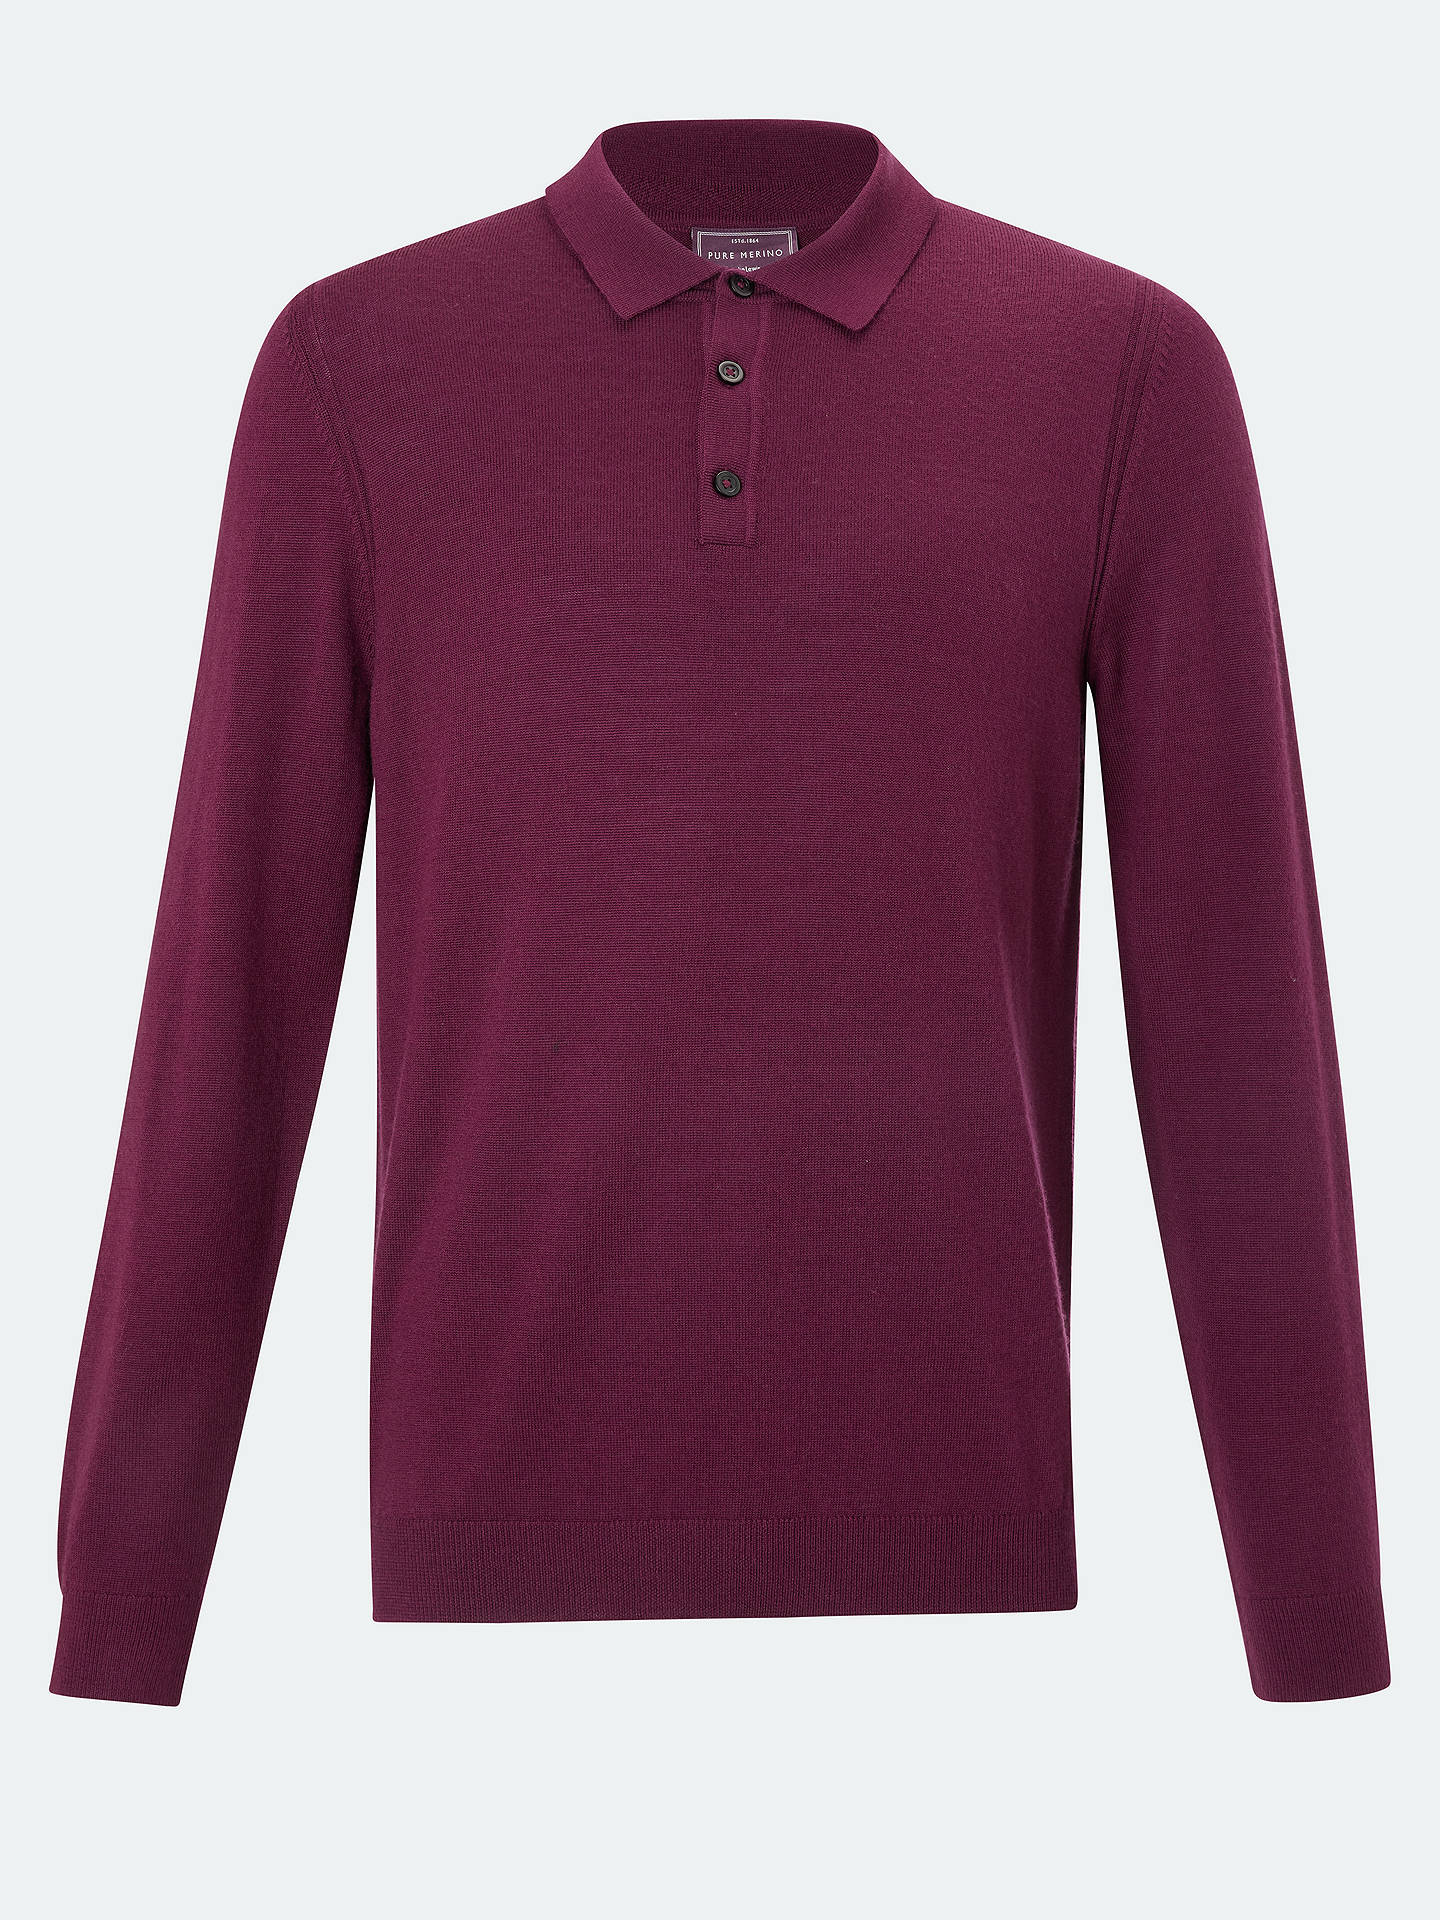 BuyJohn Lewis & Partners Merino Polo Shirt, Wine, S Online at johnlewis.com